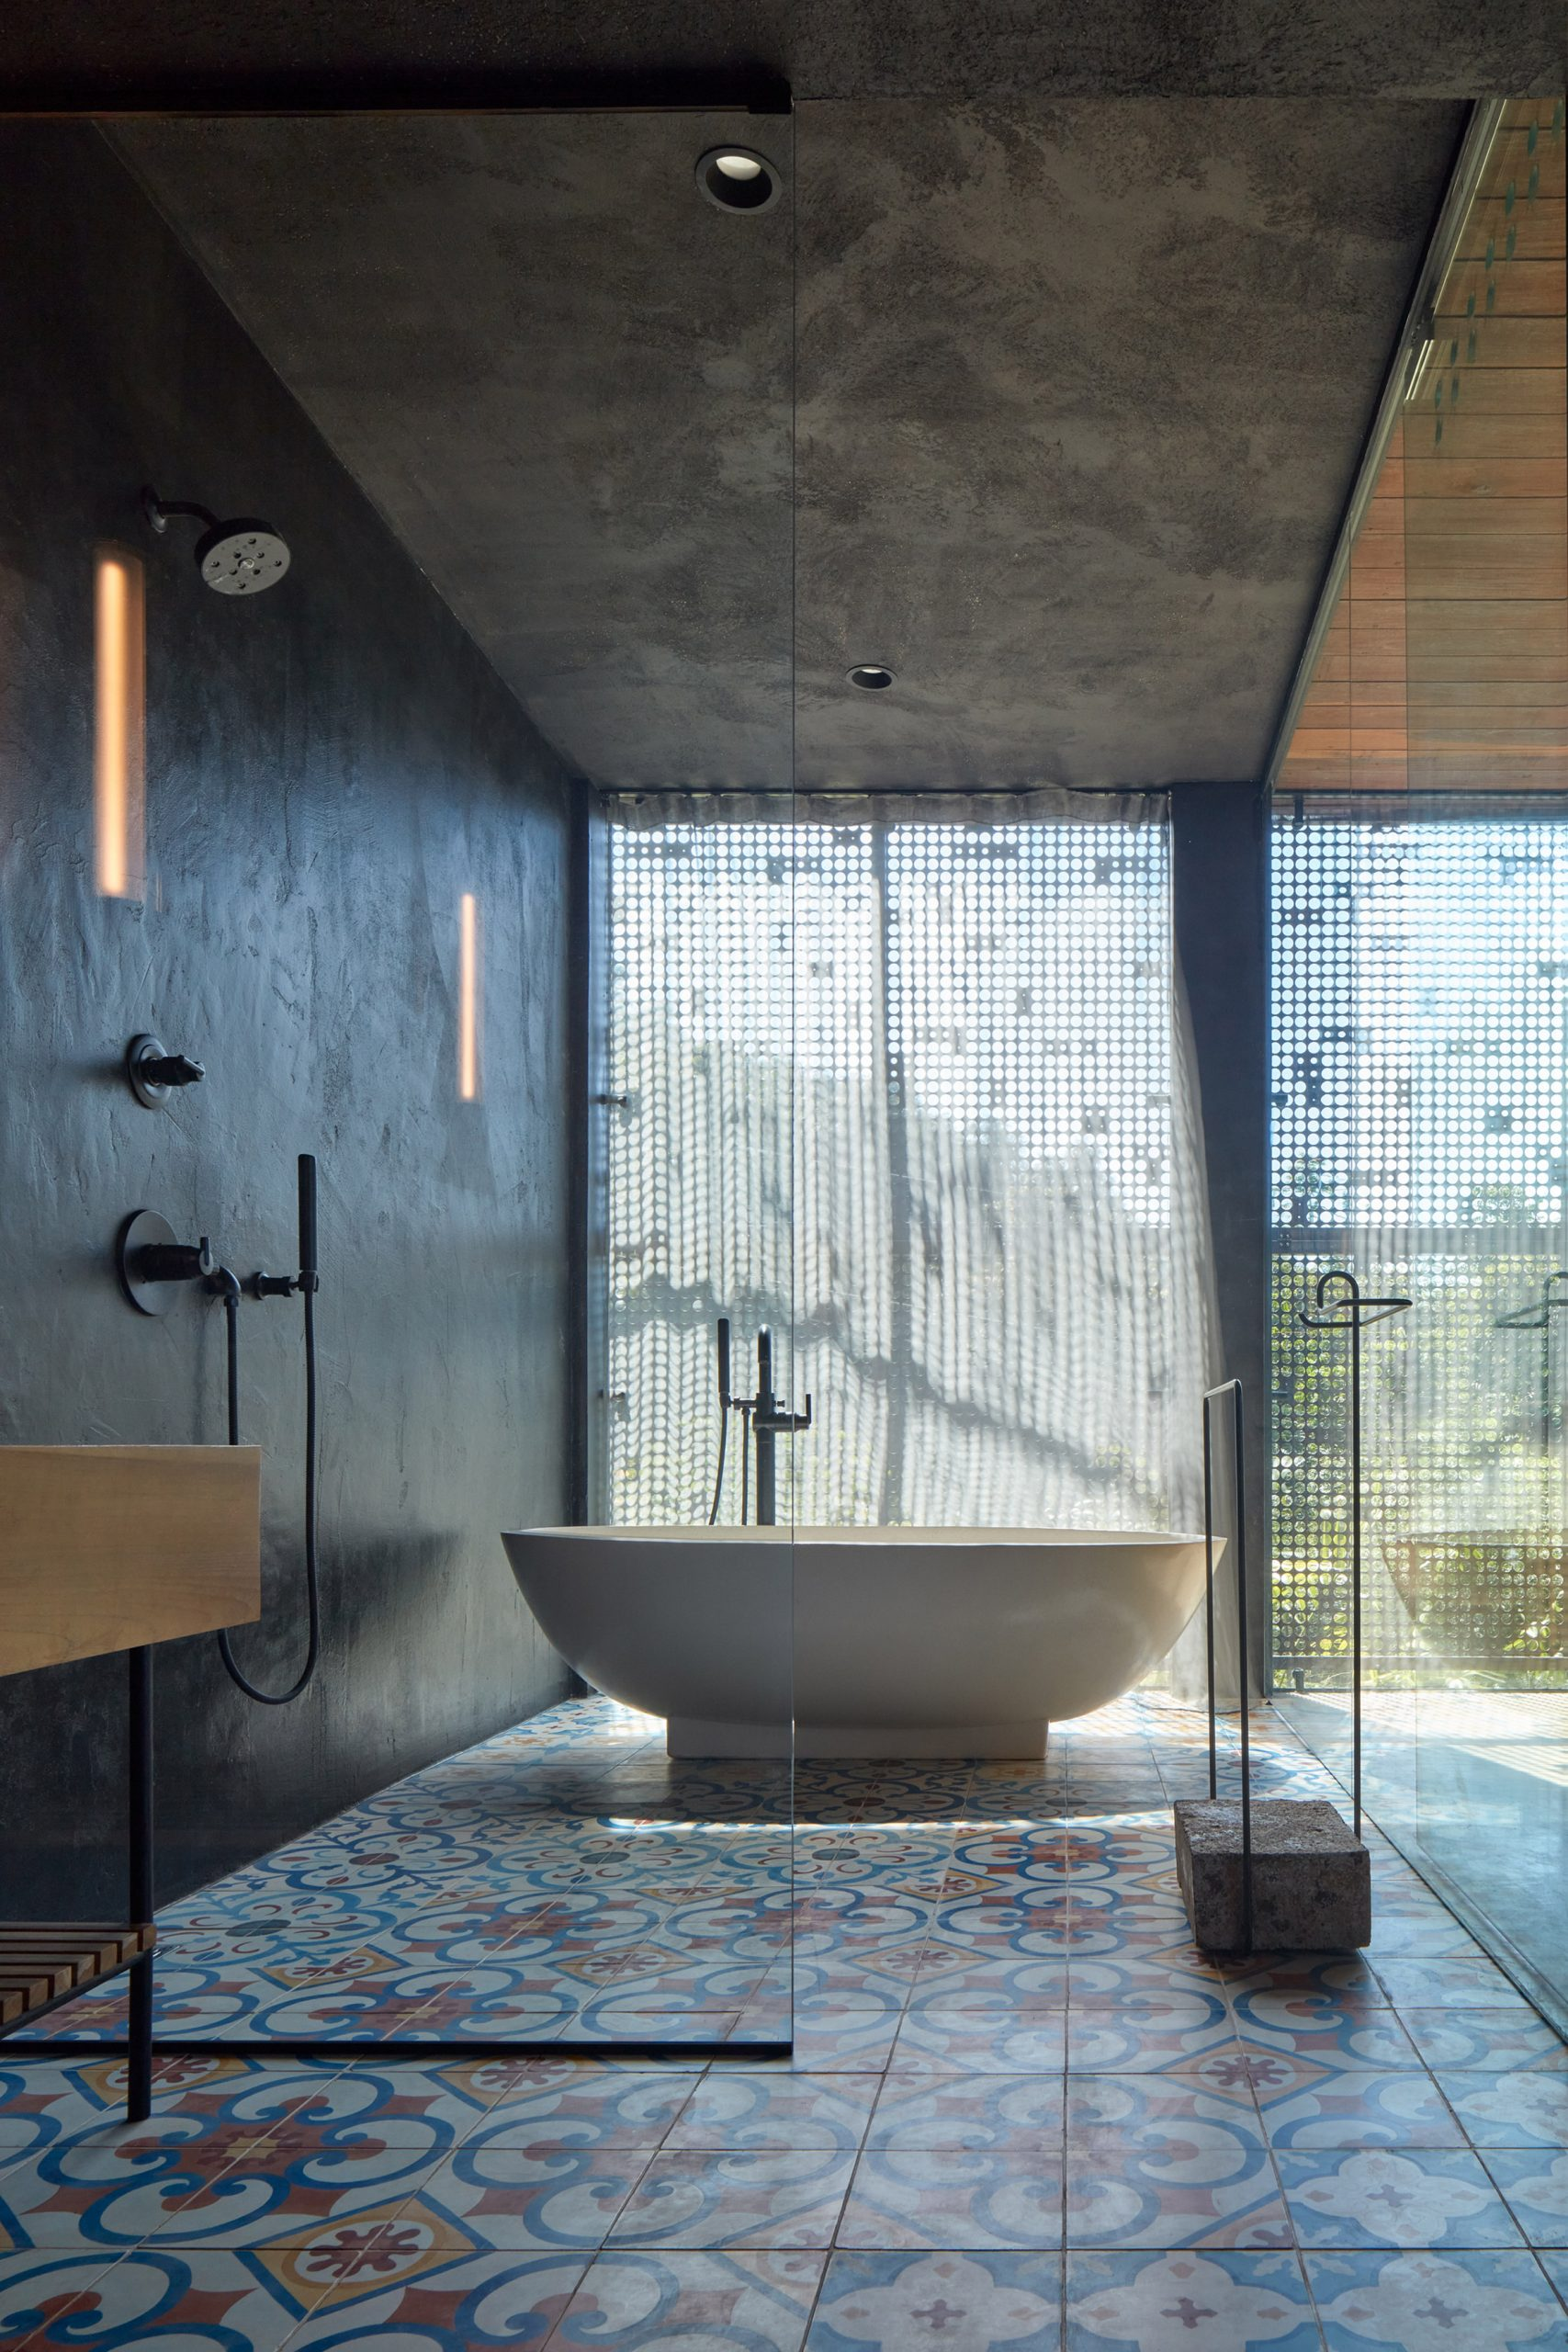 Bath room with colourful cement tiles from Nicaragua